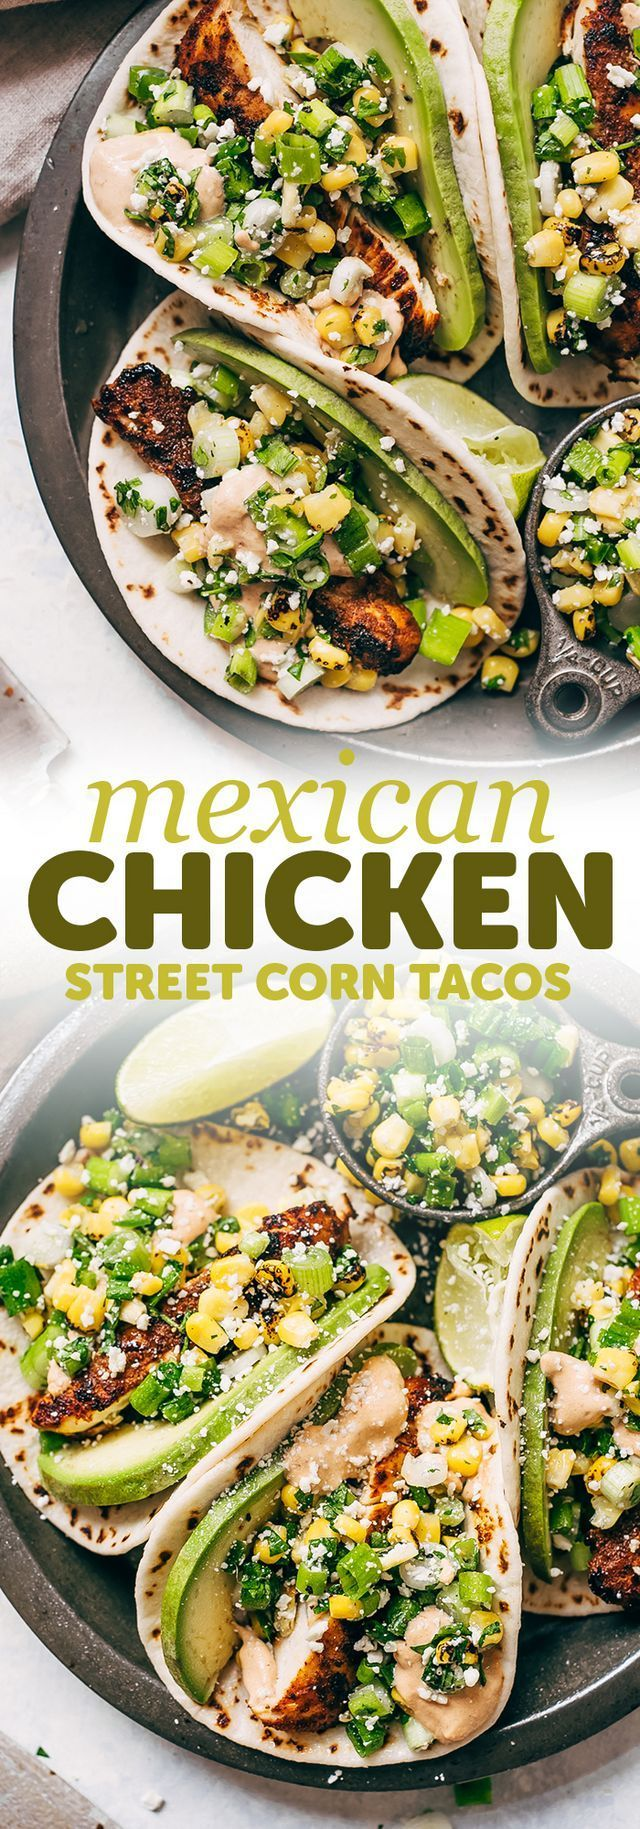 Mexican Street Corn Chicken Tacos #tacorecipes